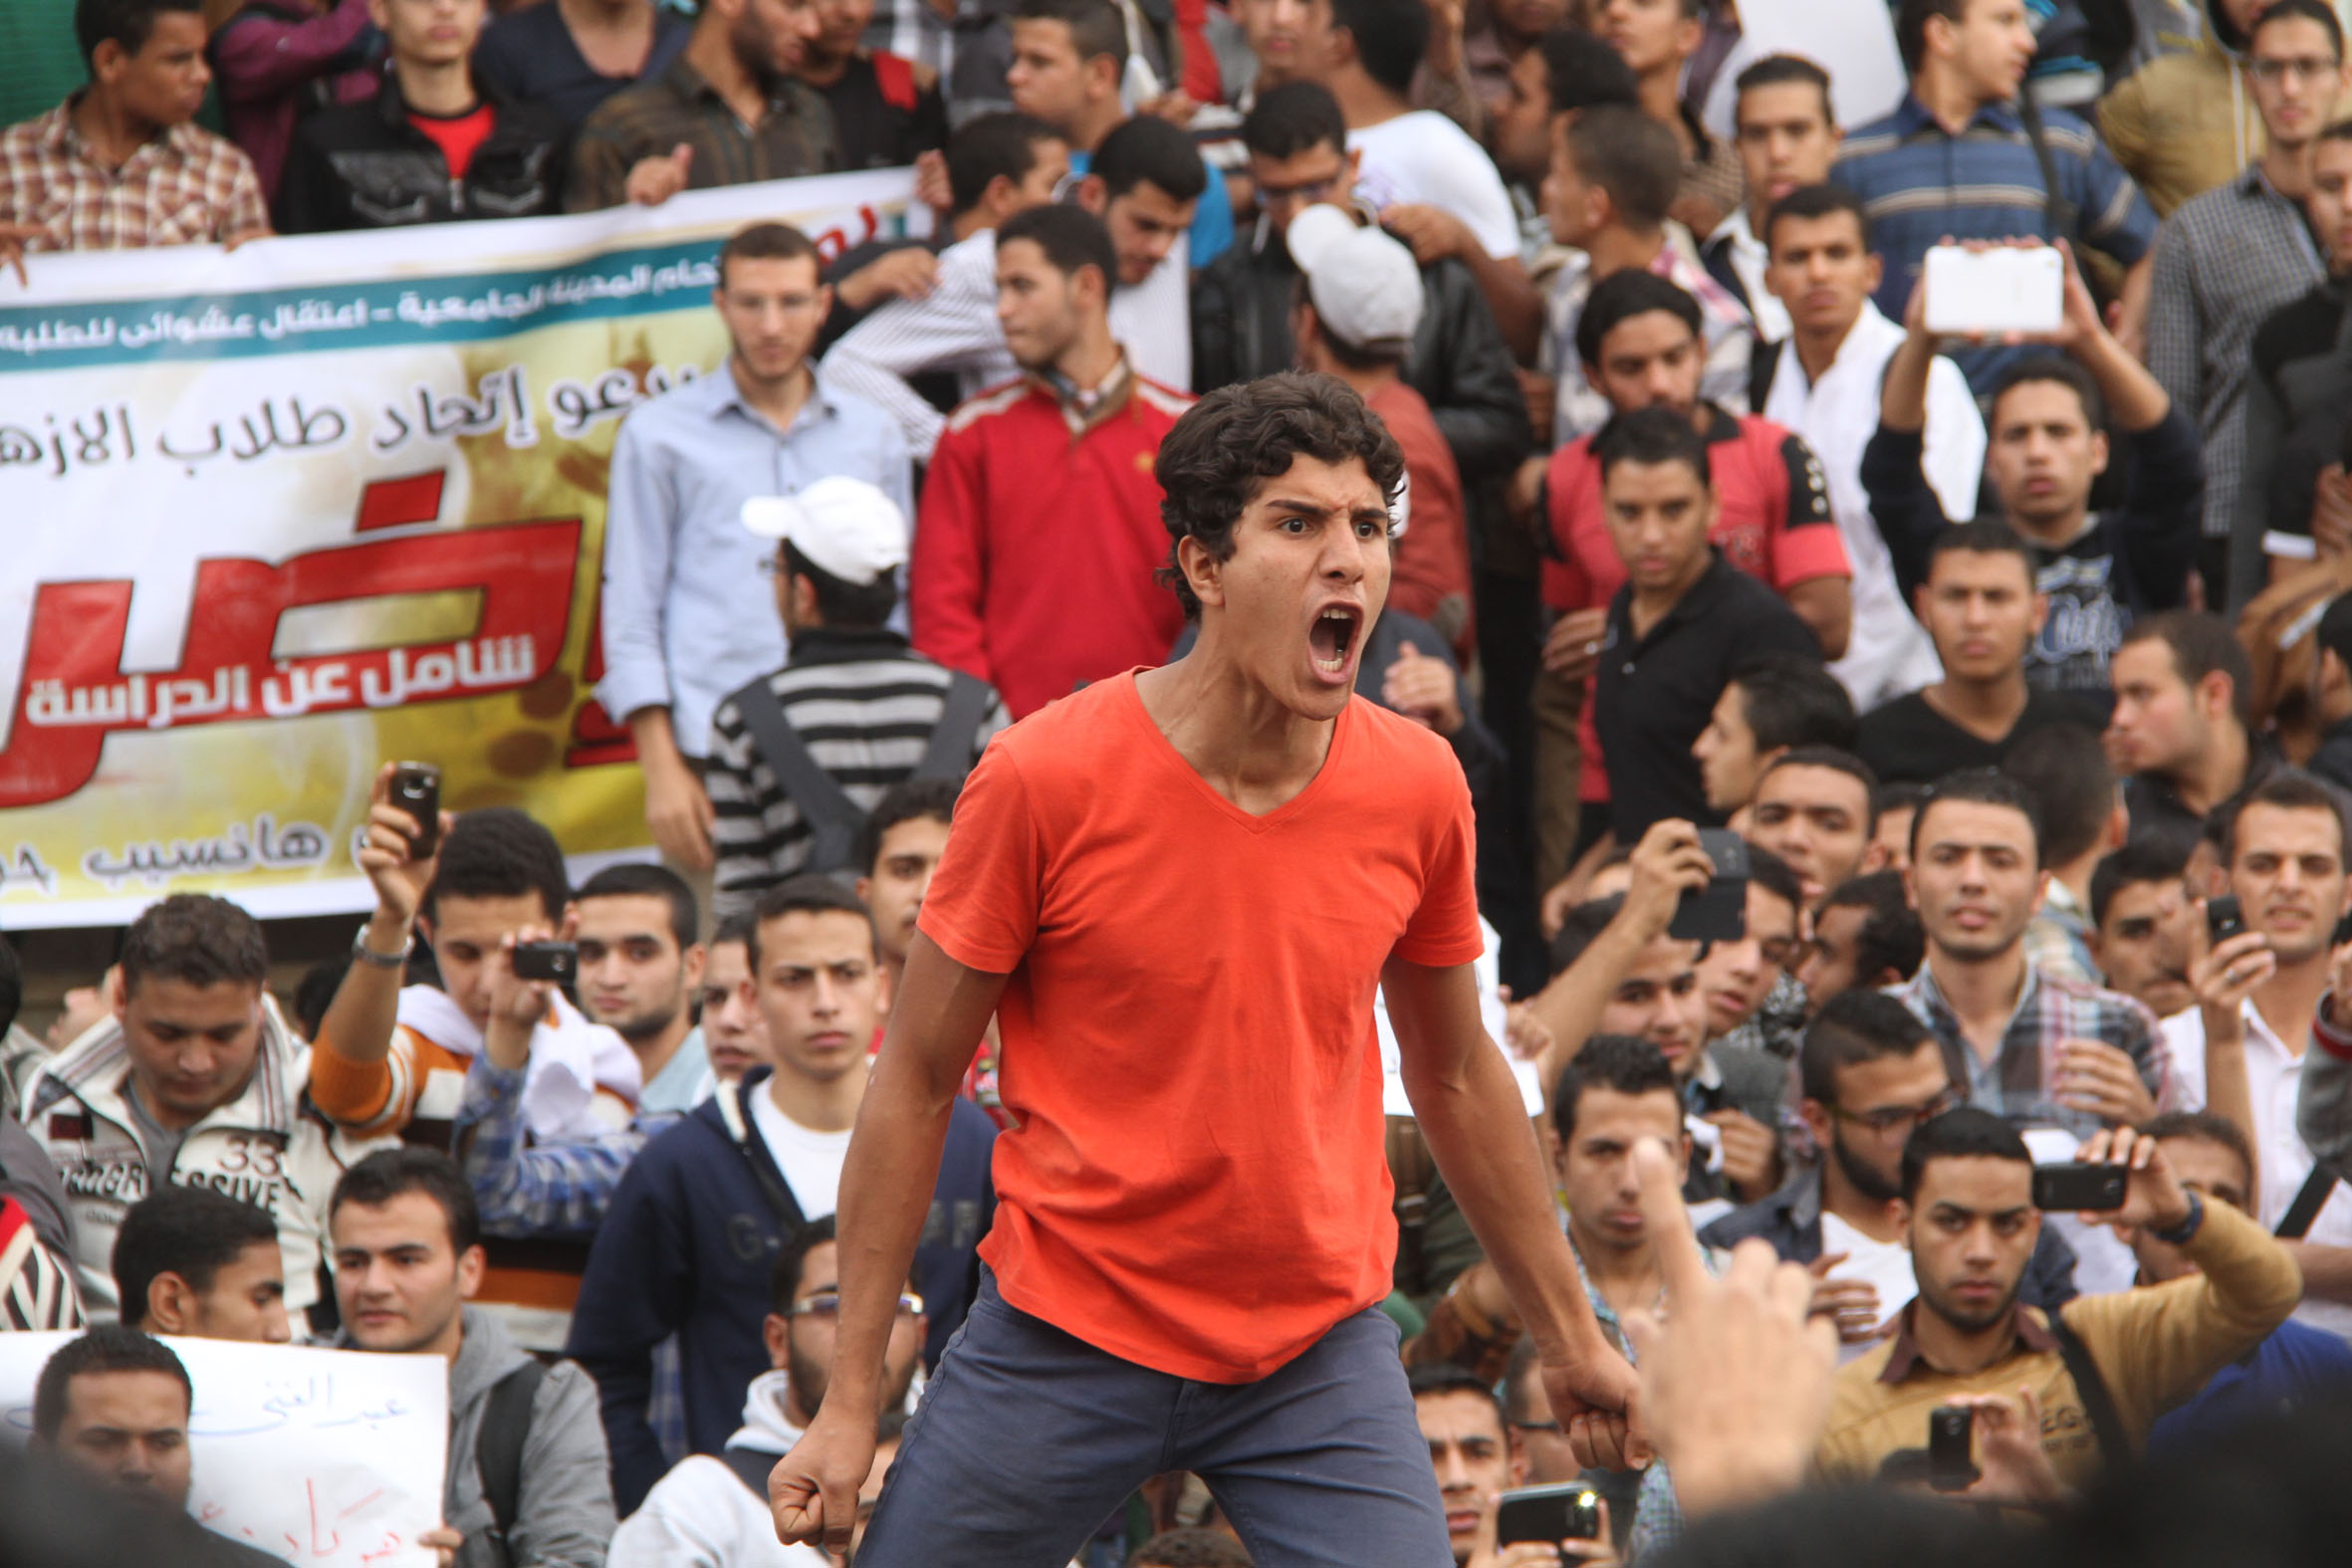 Azhar University students protest on November 2013.The nationwide branches of Al-Azhar University topped the charts for number of protests. (Photo by Mohamed Omar\File)